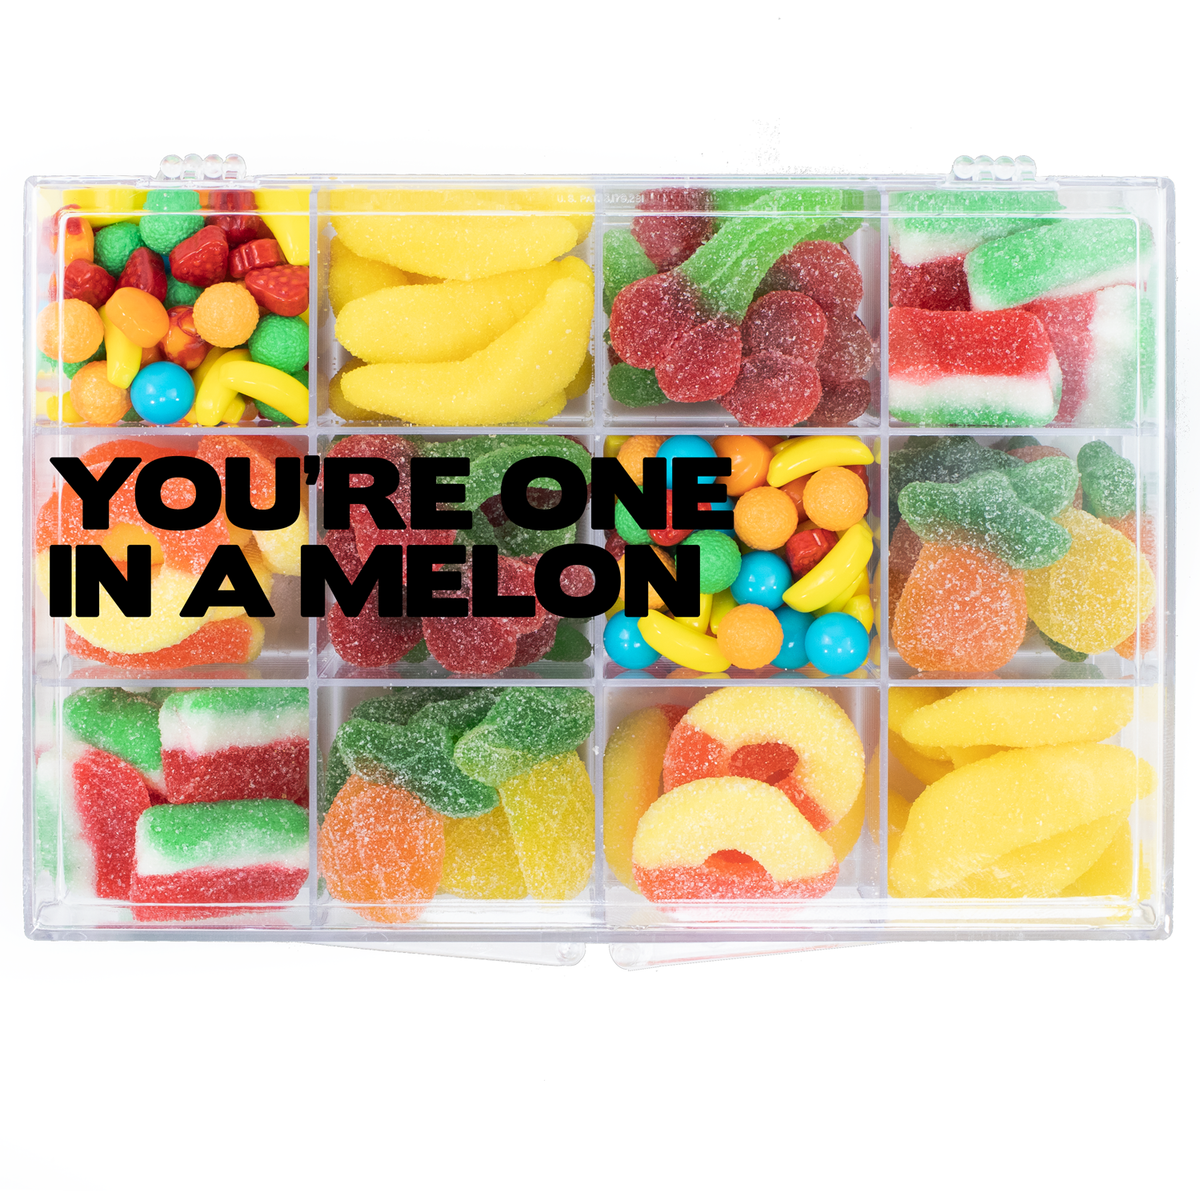 Fruit Salad Snackle Box